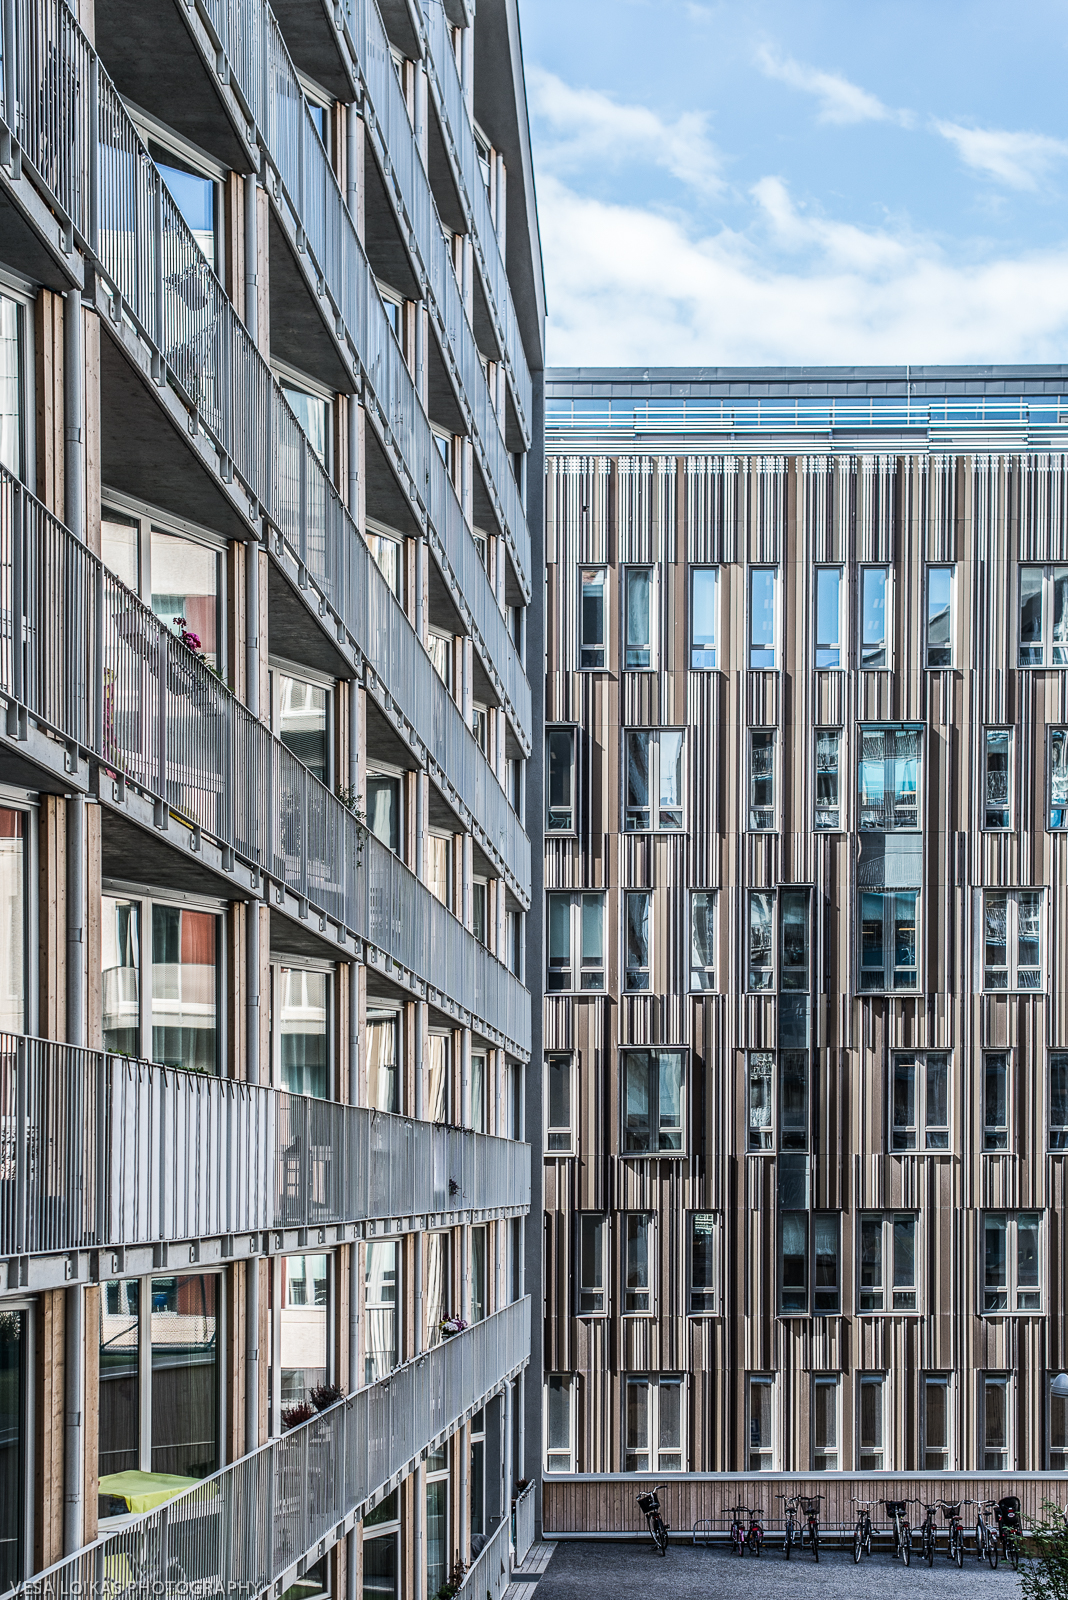 Västermalms Atrium is a large residential project built in 2015 and it is located in Kungsholmen, central Stockholm.